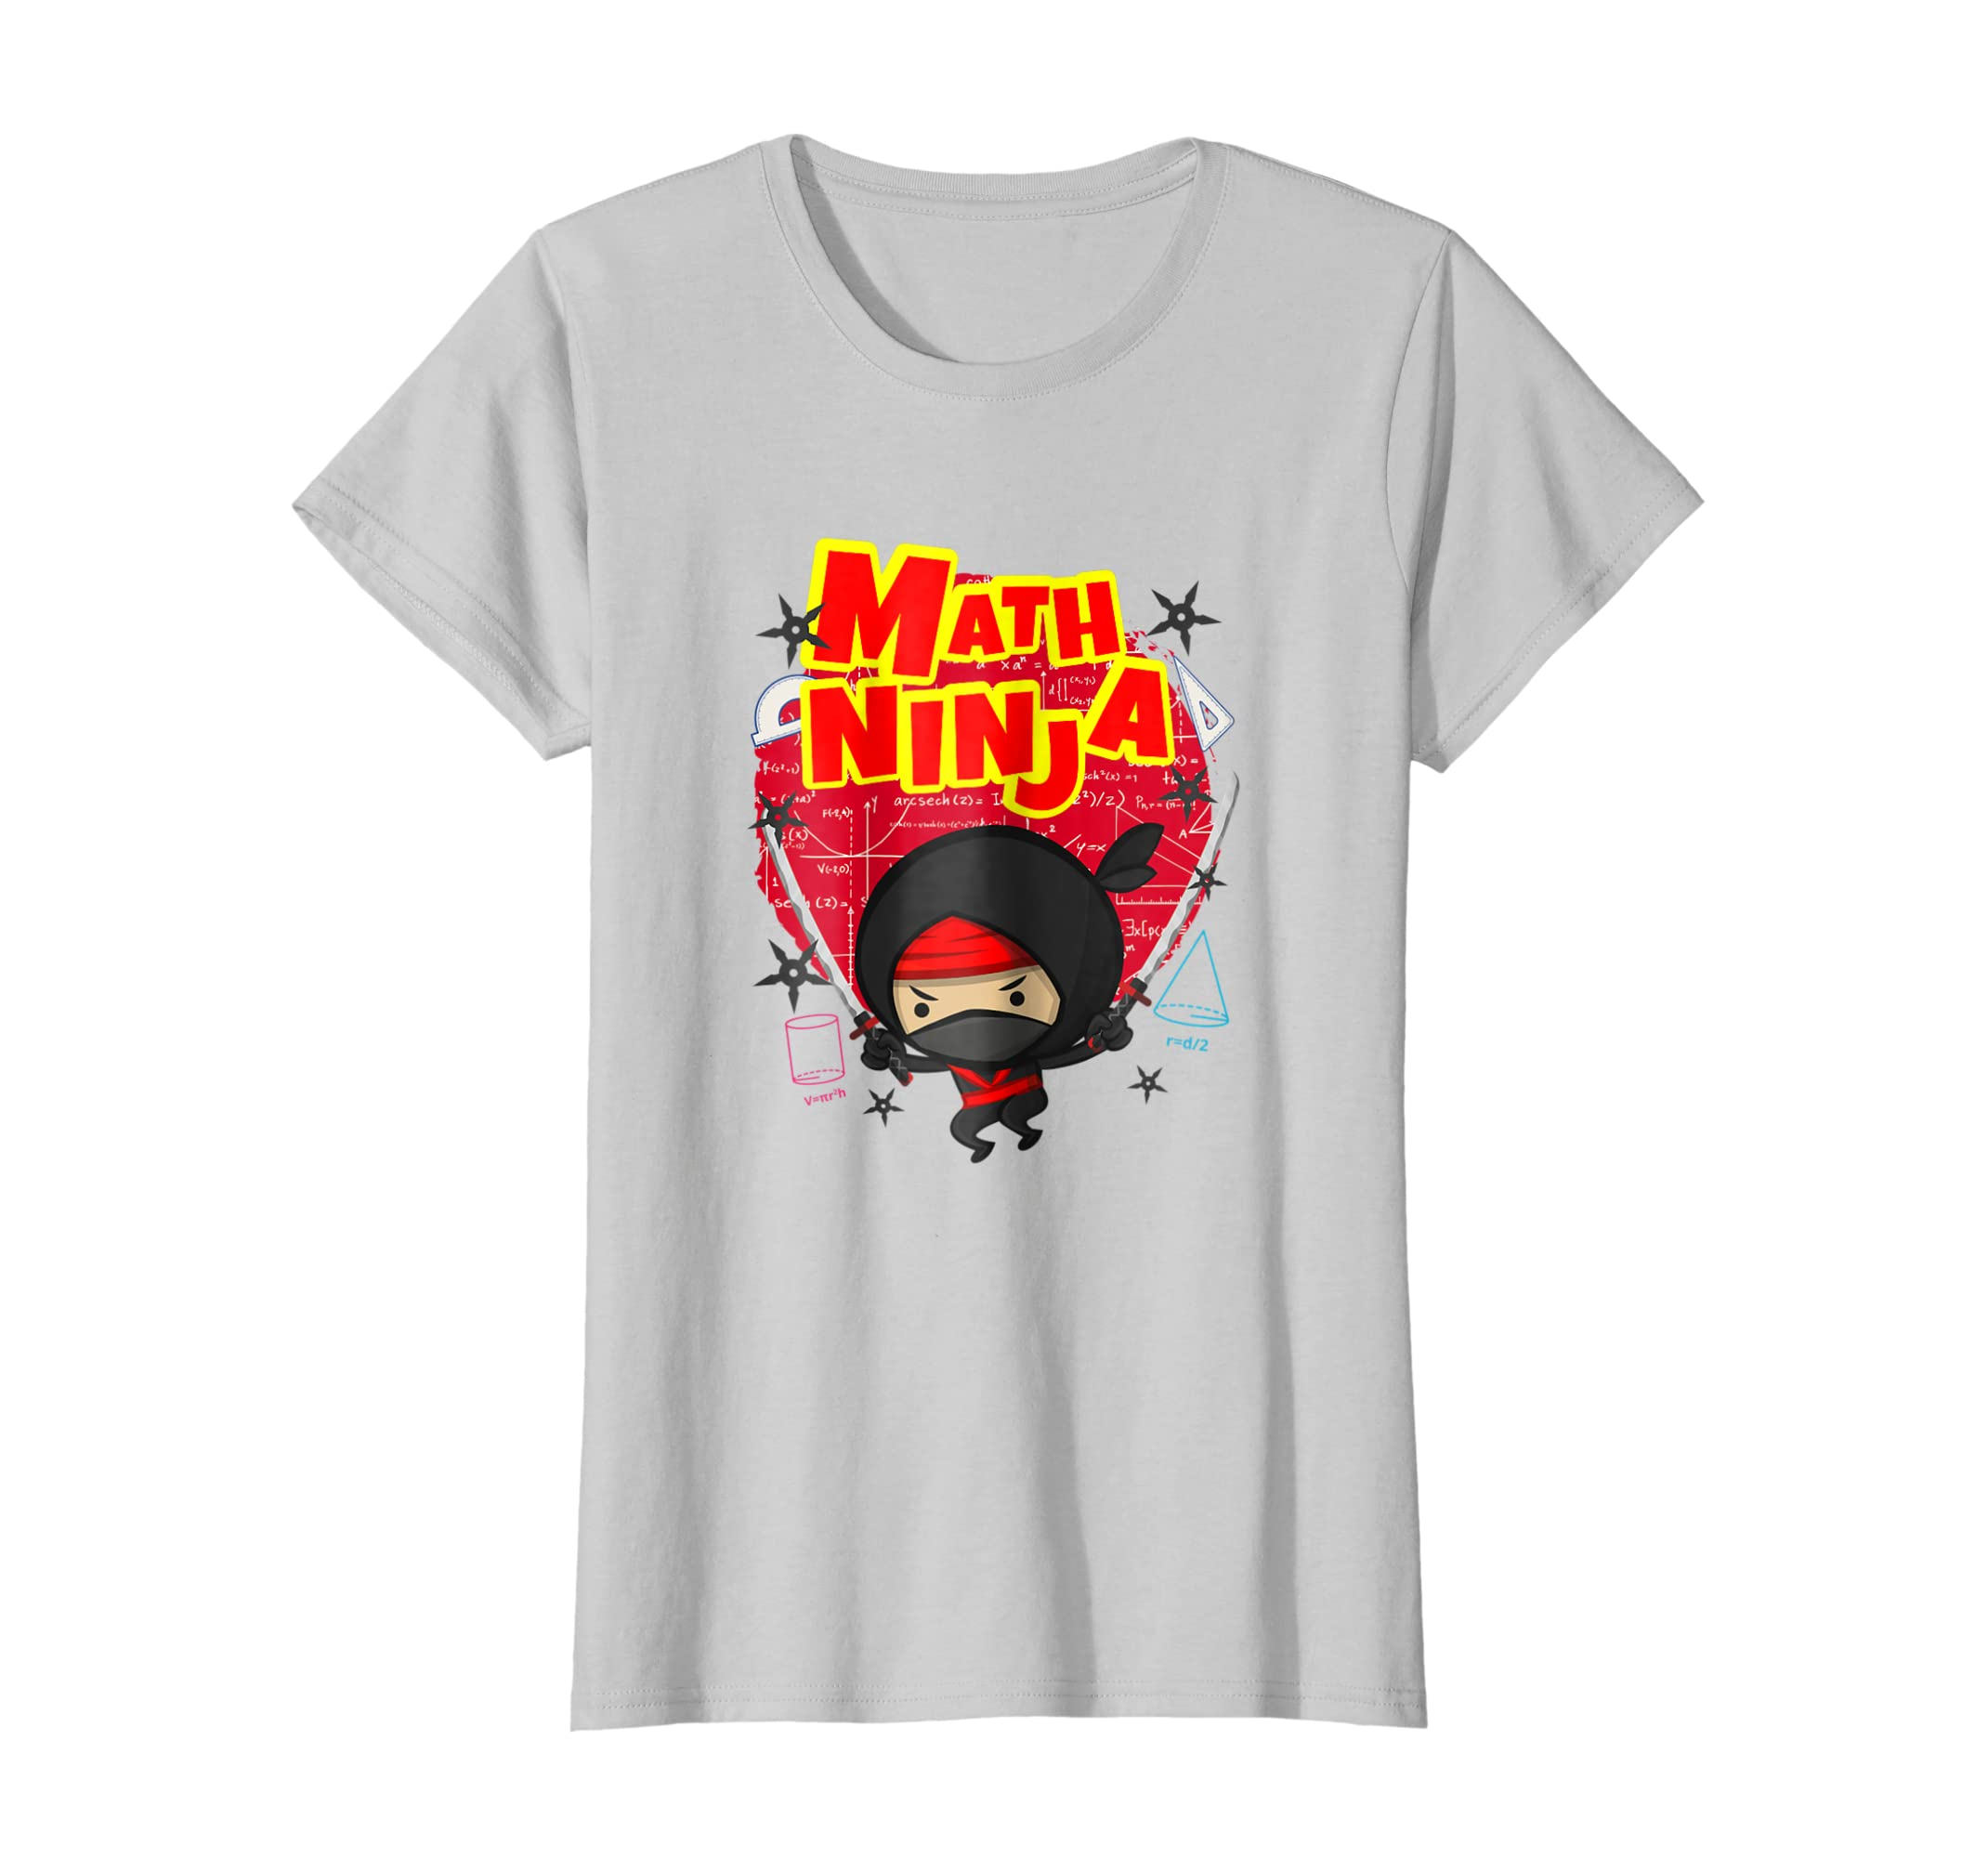 Amazon.com: Math Ninja T-Shirt for A Mathematics Teacher or ...